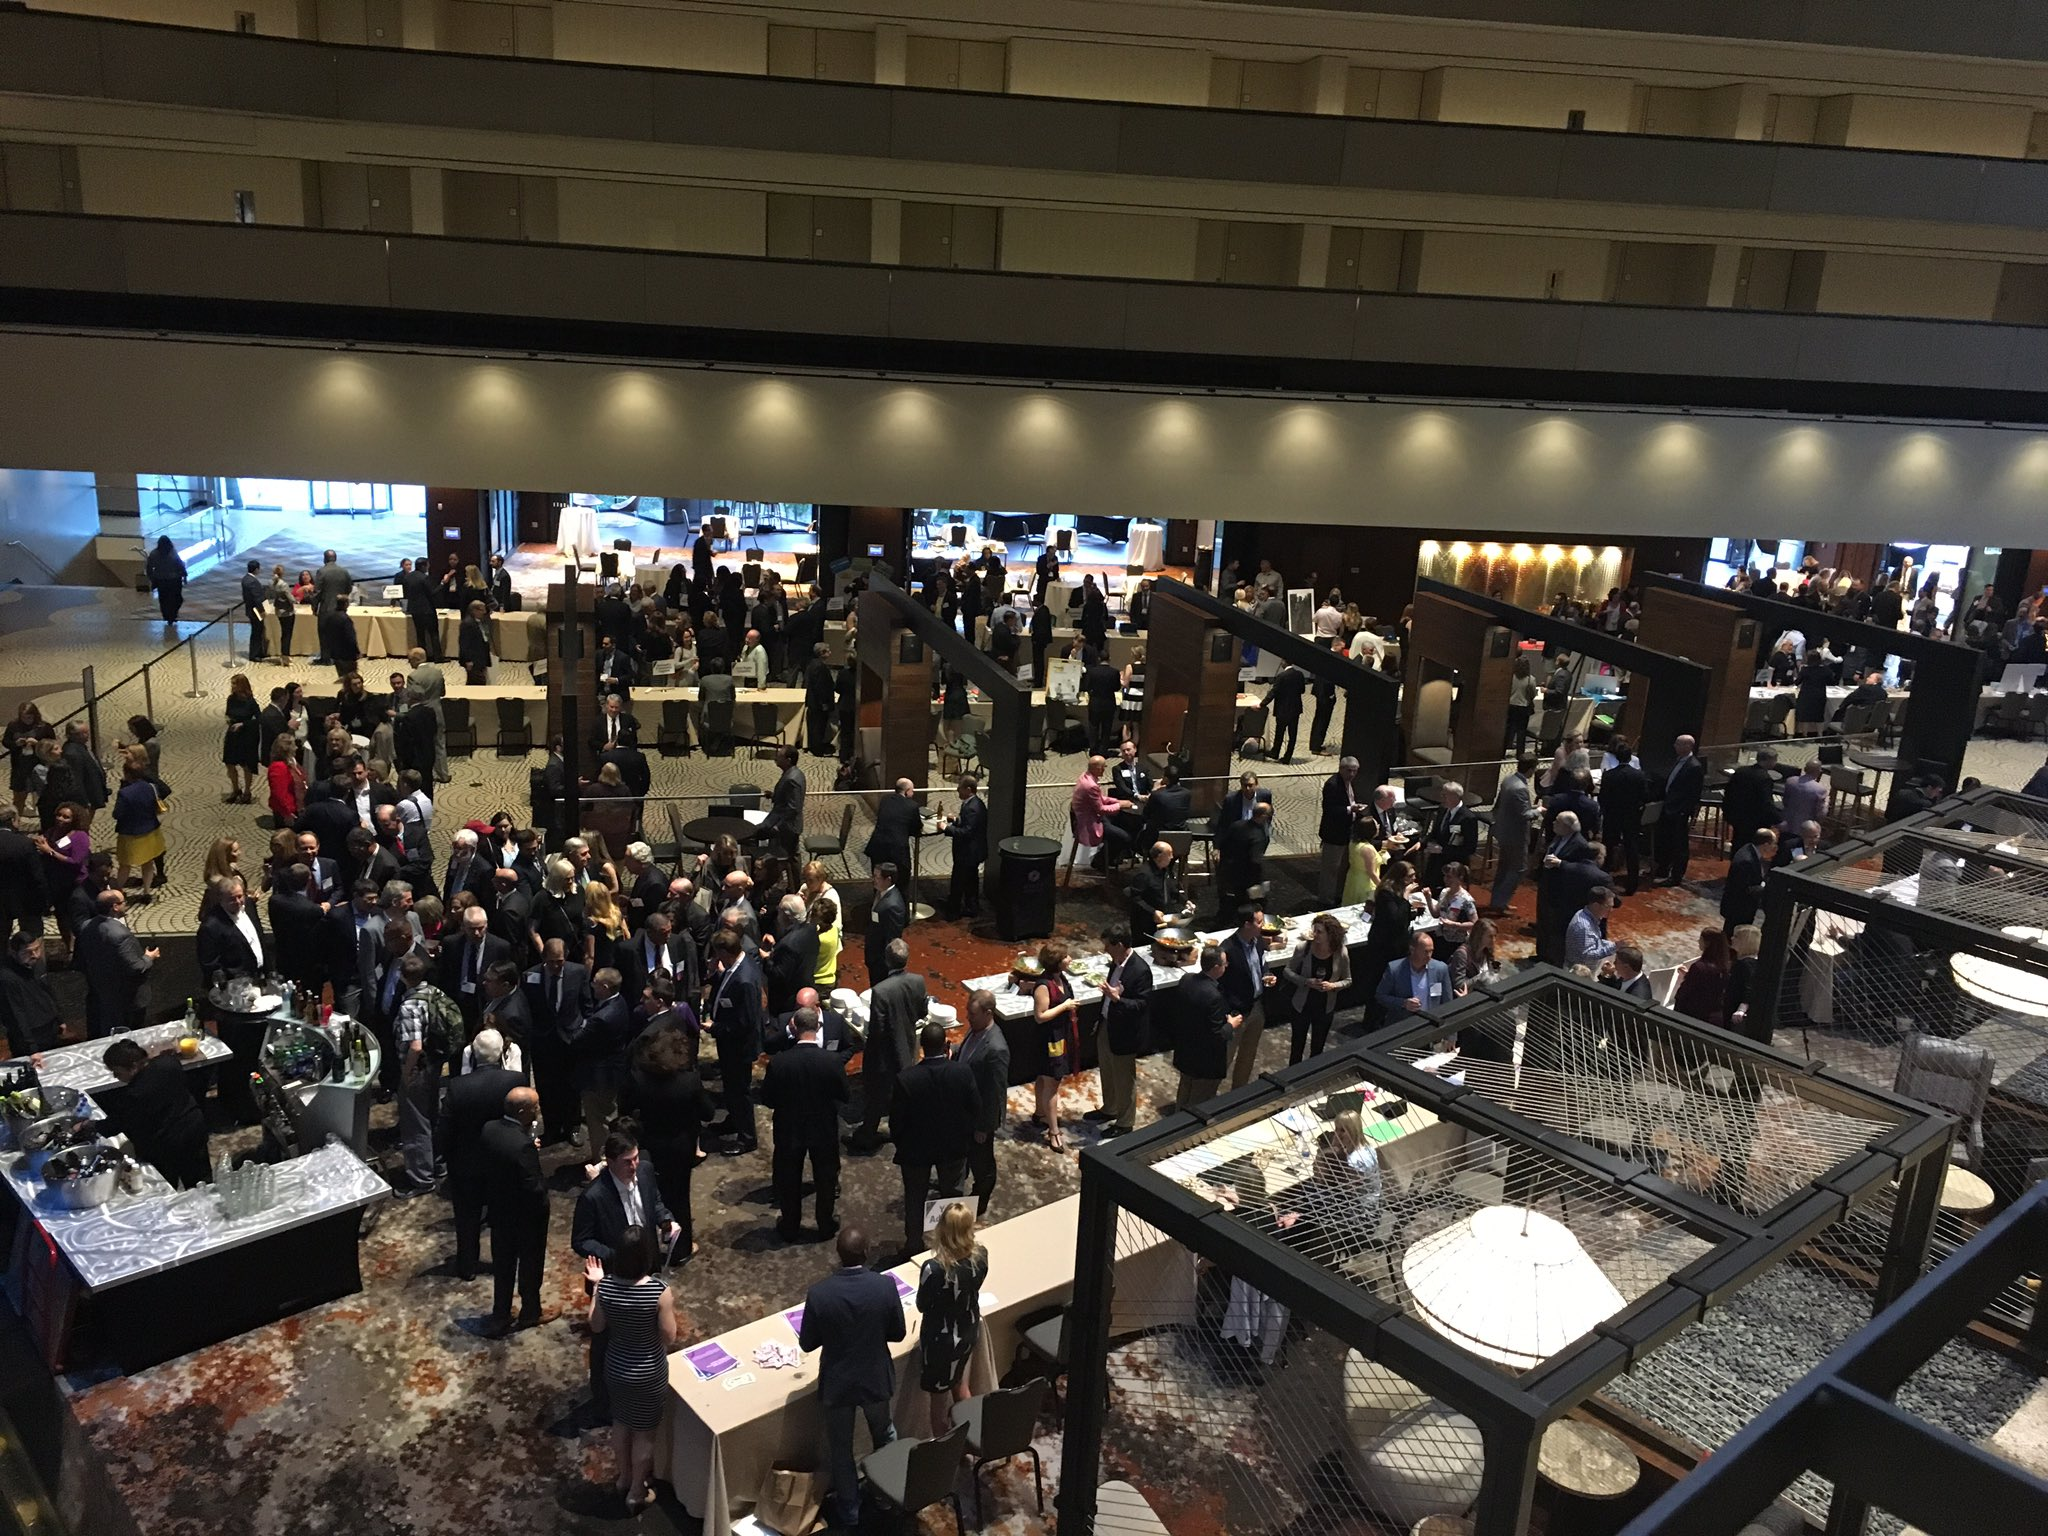 Awesome opening reception and committee expo! #LitigationSAC https://t.co/TKfehGCGbw